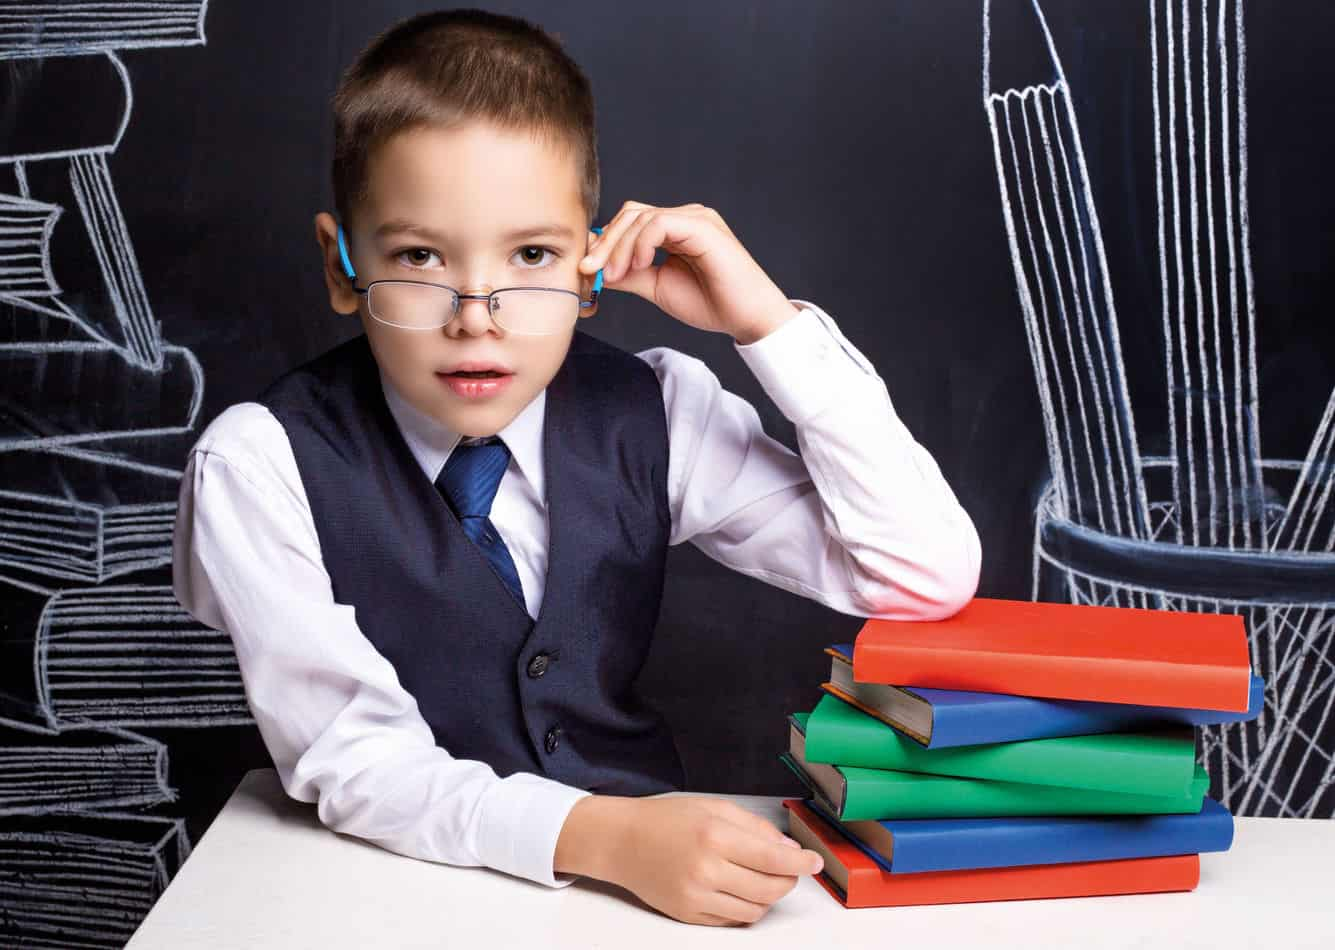 What Should A 7 Year Old Know Academically